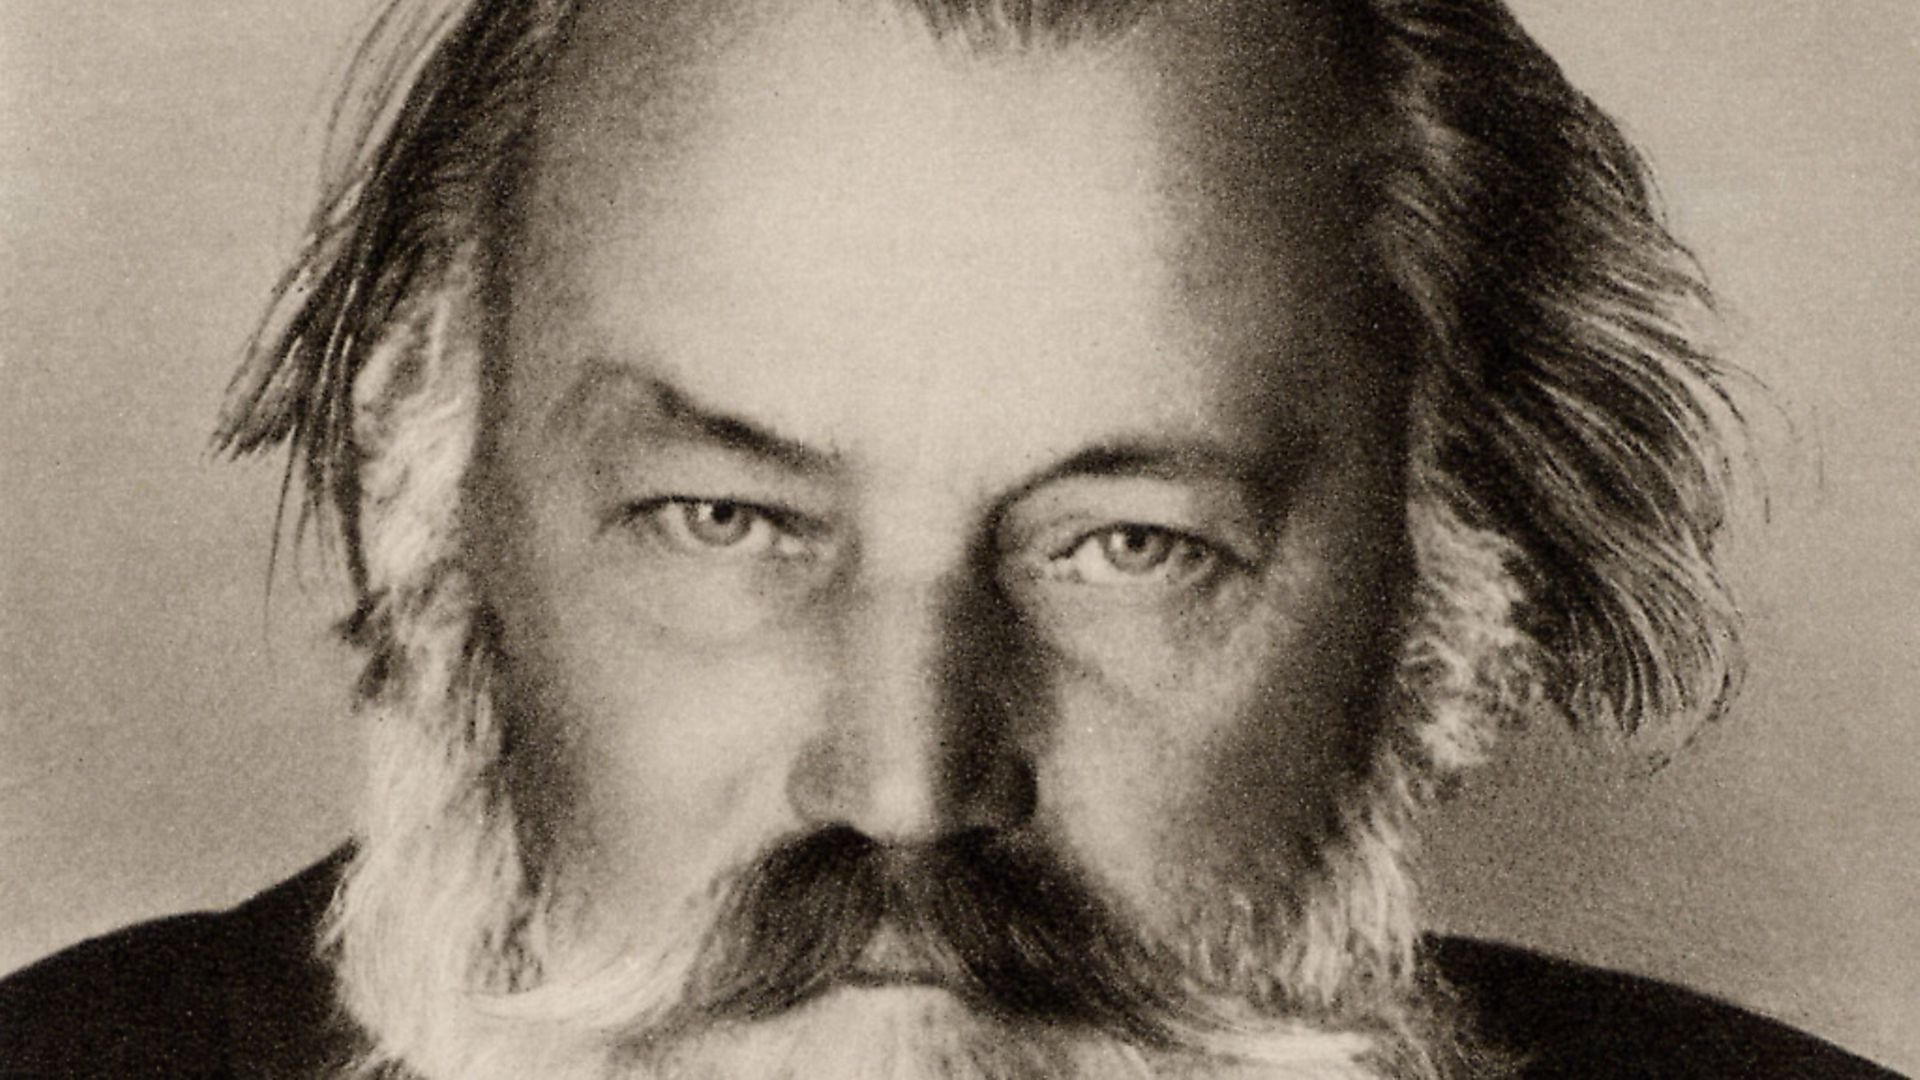 Johannes Brahms (1833-1897) German composer. From photograph taken in the the last year of his life. Halftone. (Photo by Universal History Archive/Getty Images) - Credit: Getty Images